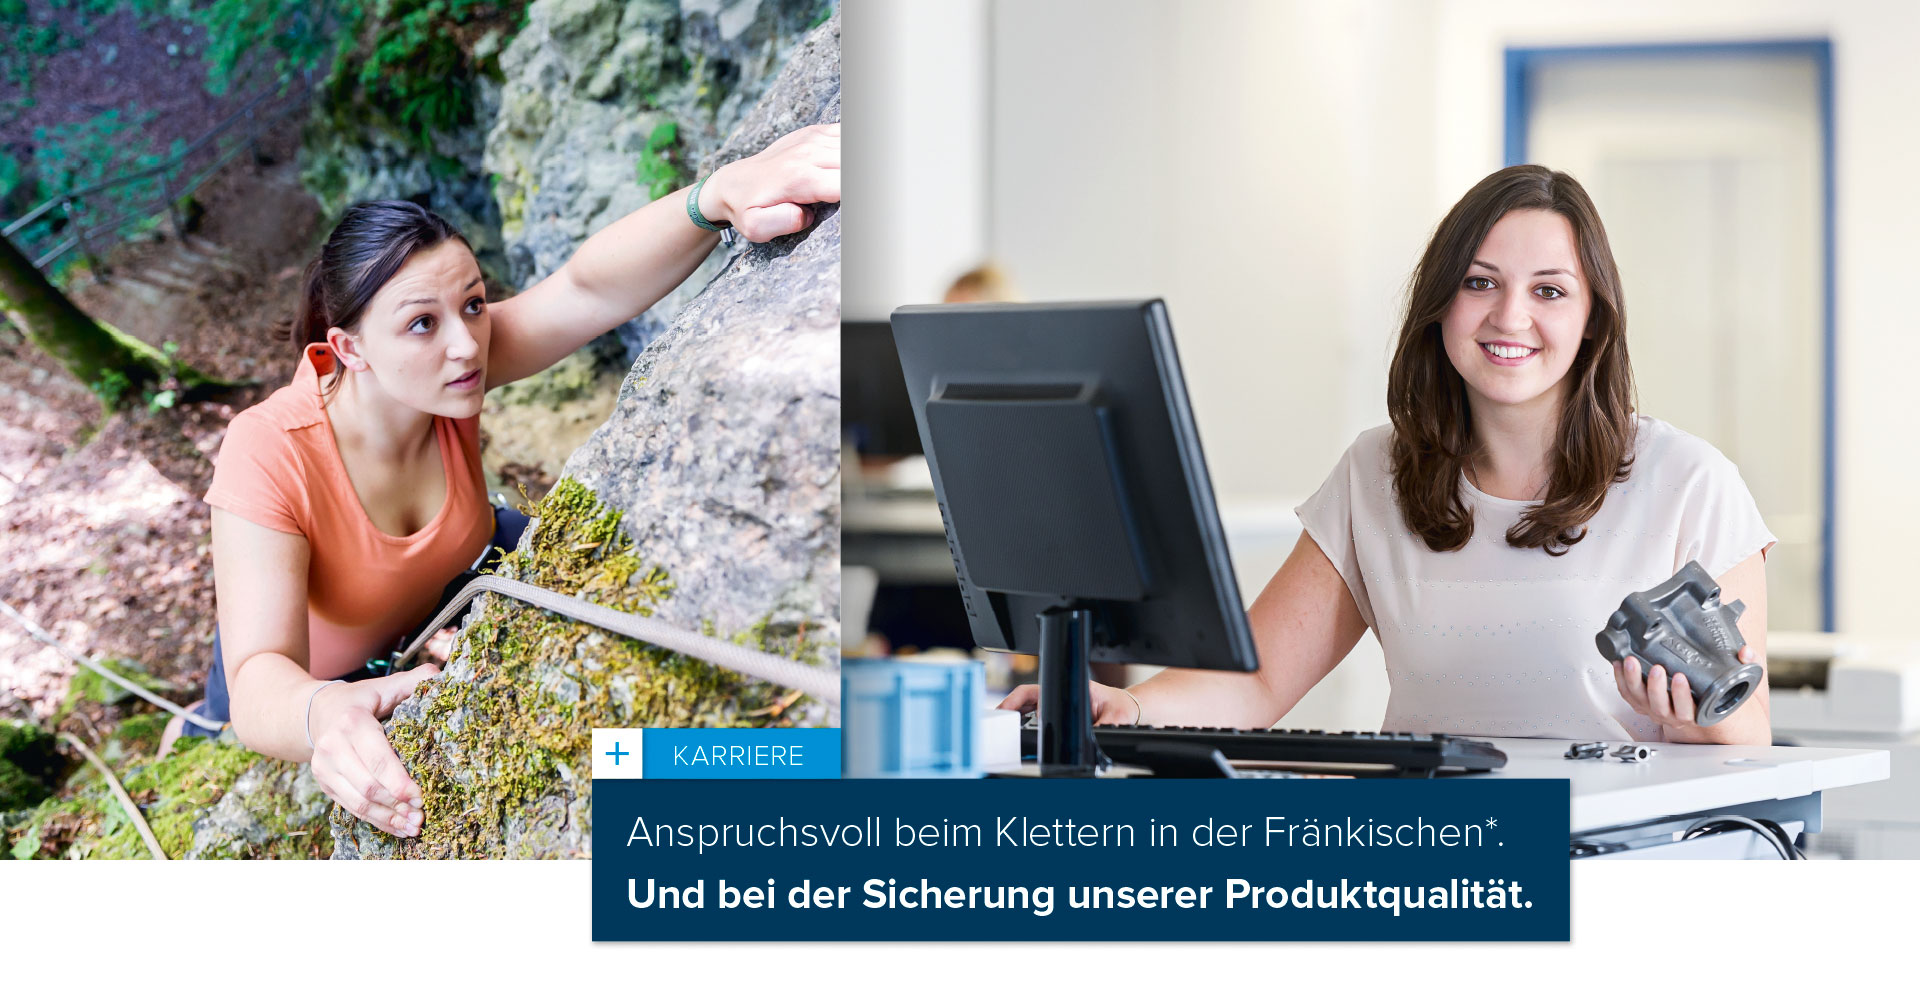 OPUS Marketing / Projekte / Klubert+Schmidt / Karriere / Employer Branding / Qualitätssicherung